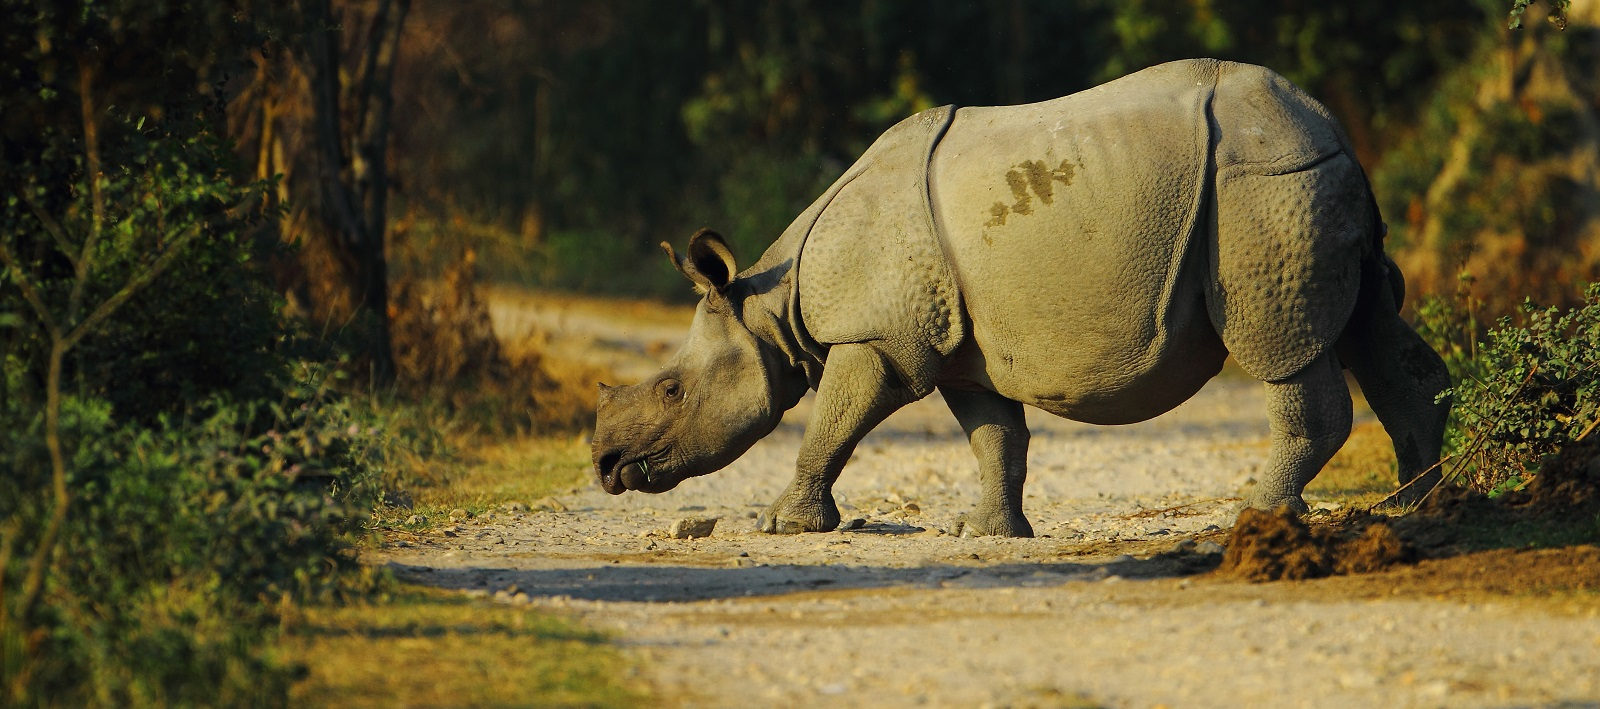 Enchanting Travels India Tours East India Indian one horned rhino in Kaziranga National Park of Assam in India